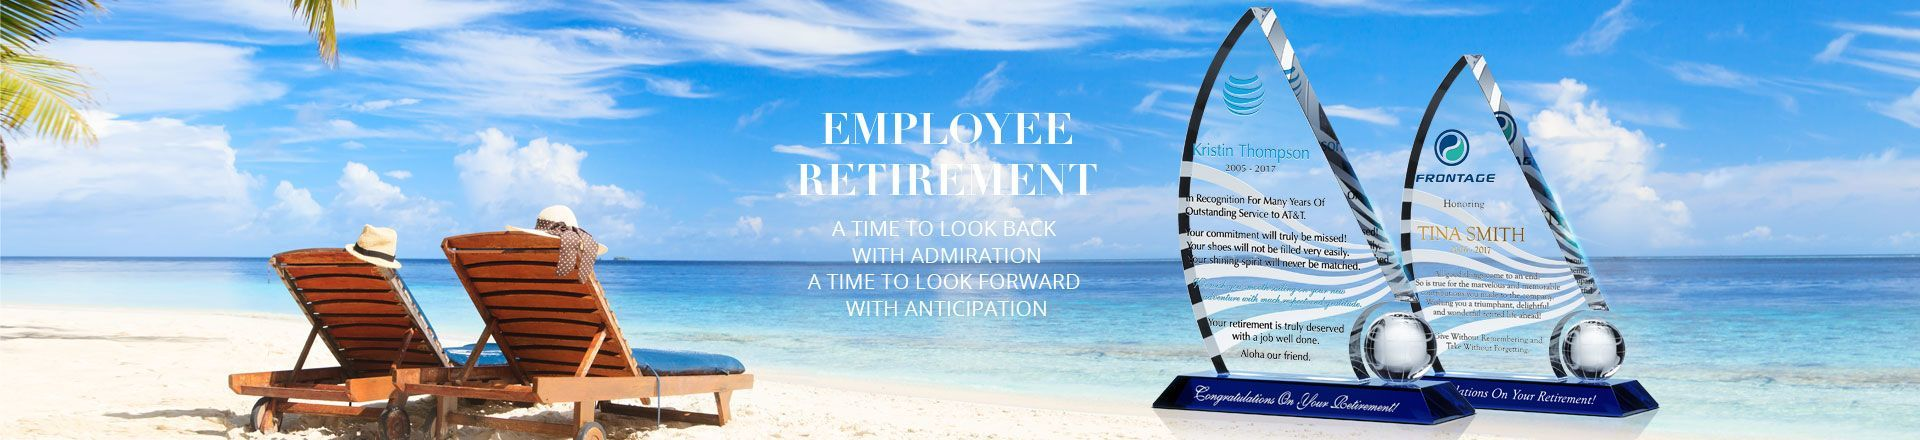 Retirement Quotes and Plaque Wording Ideas | DIY Awards